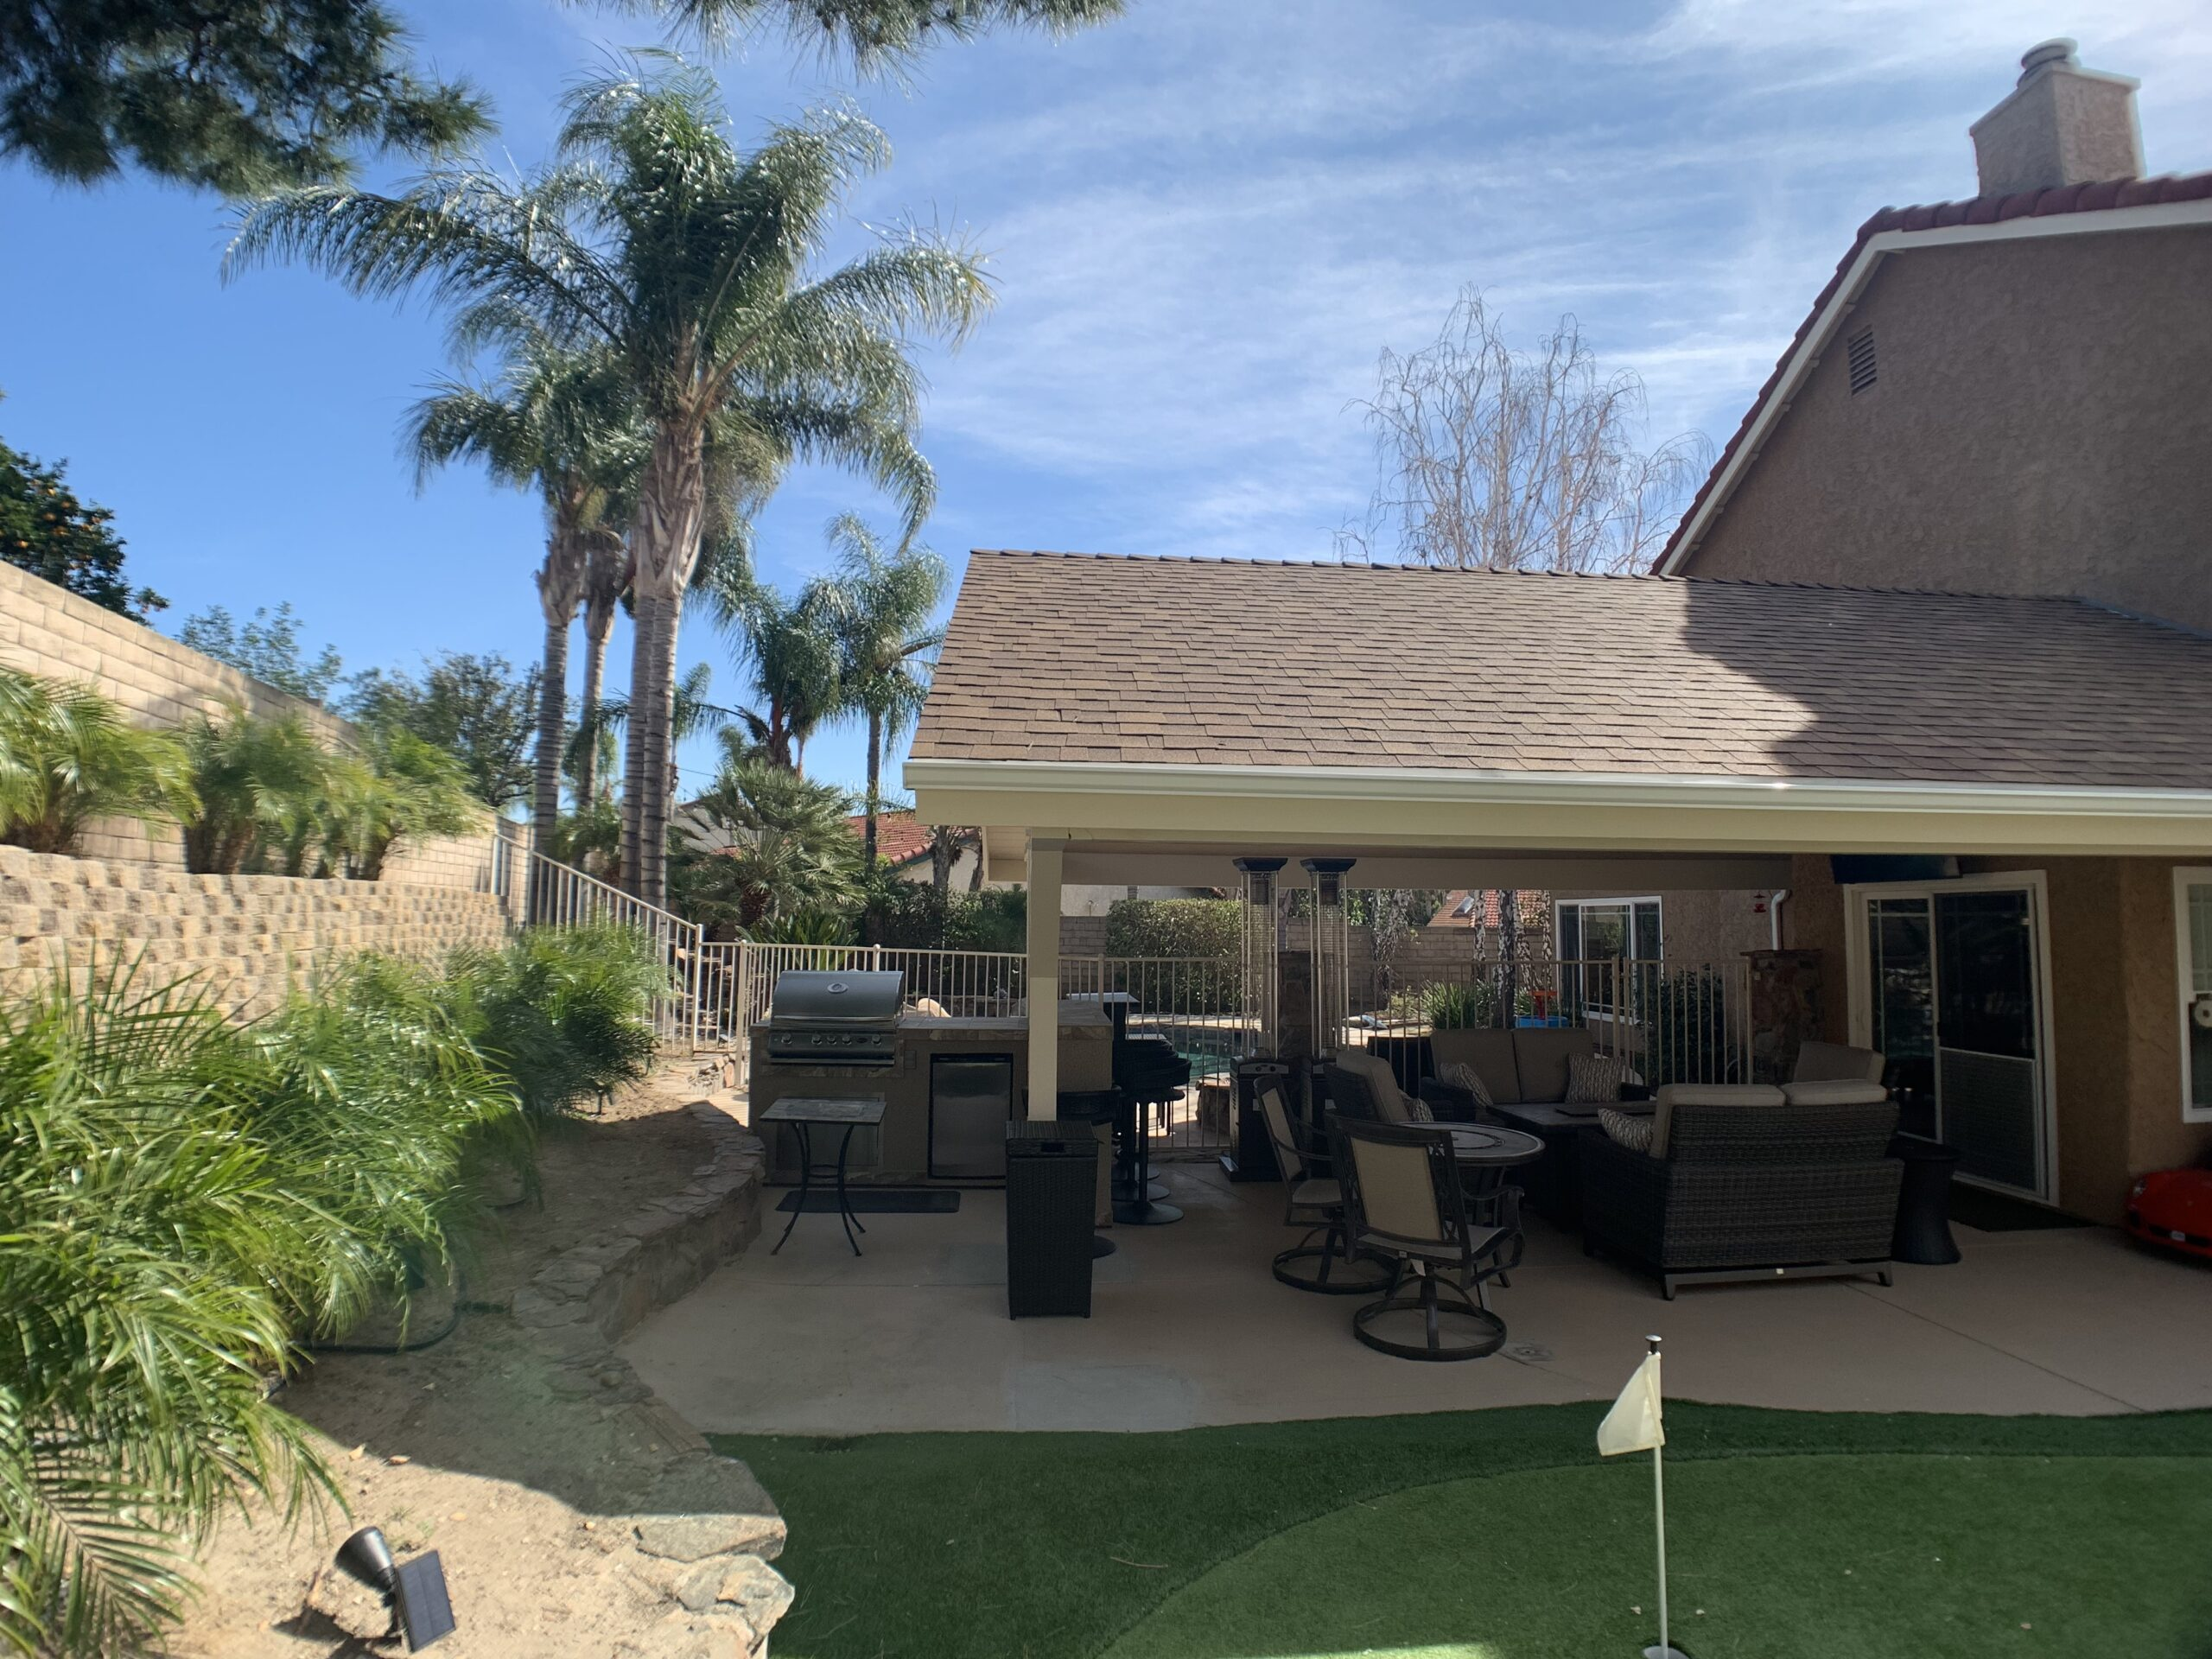 Patio Cover & Outdoor Kitchen Simi Valley CA